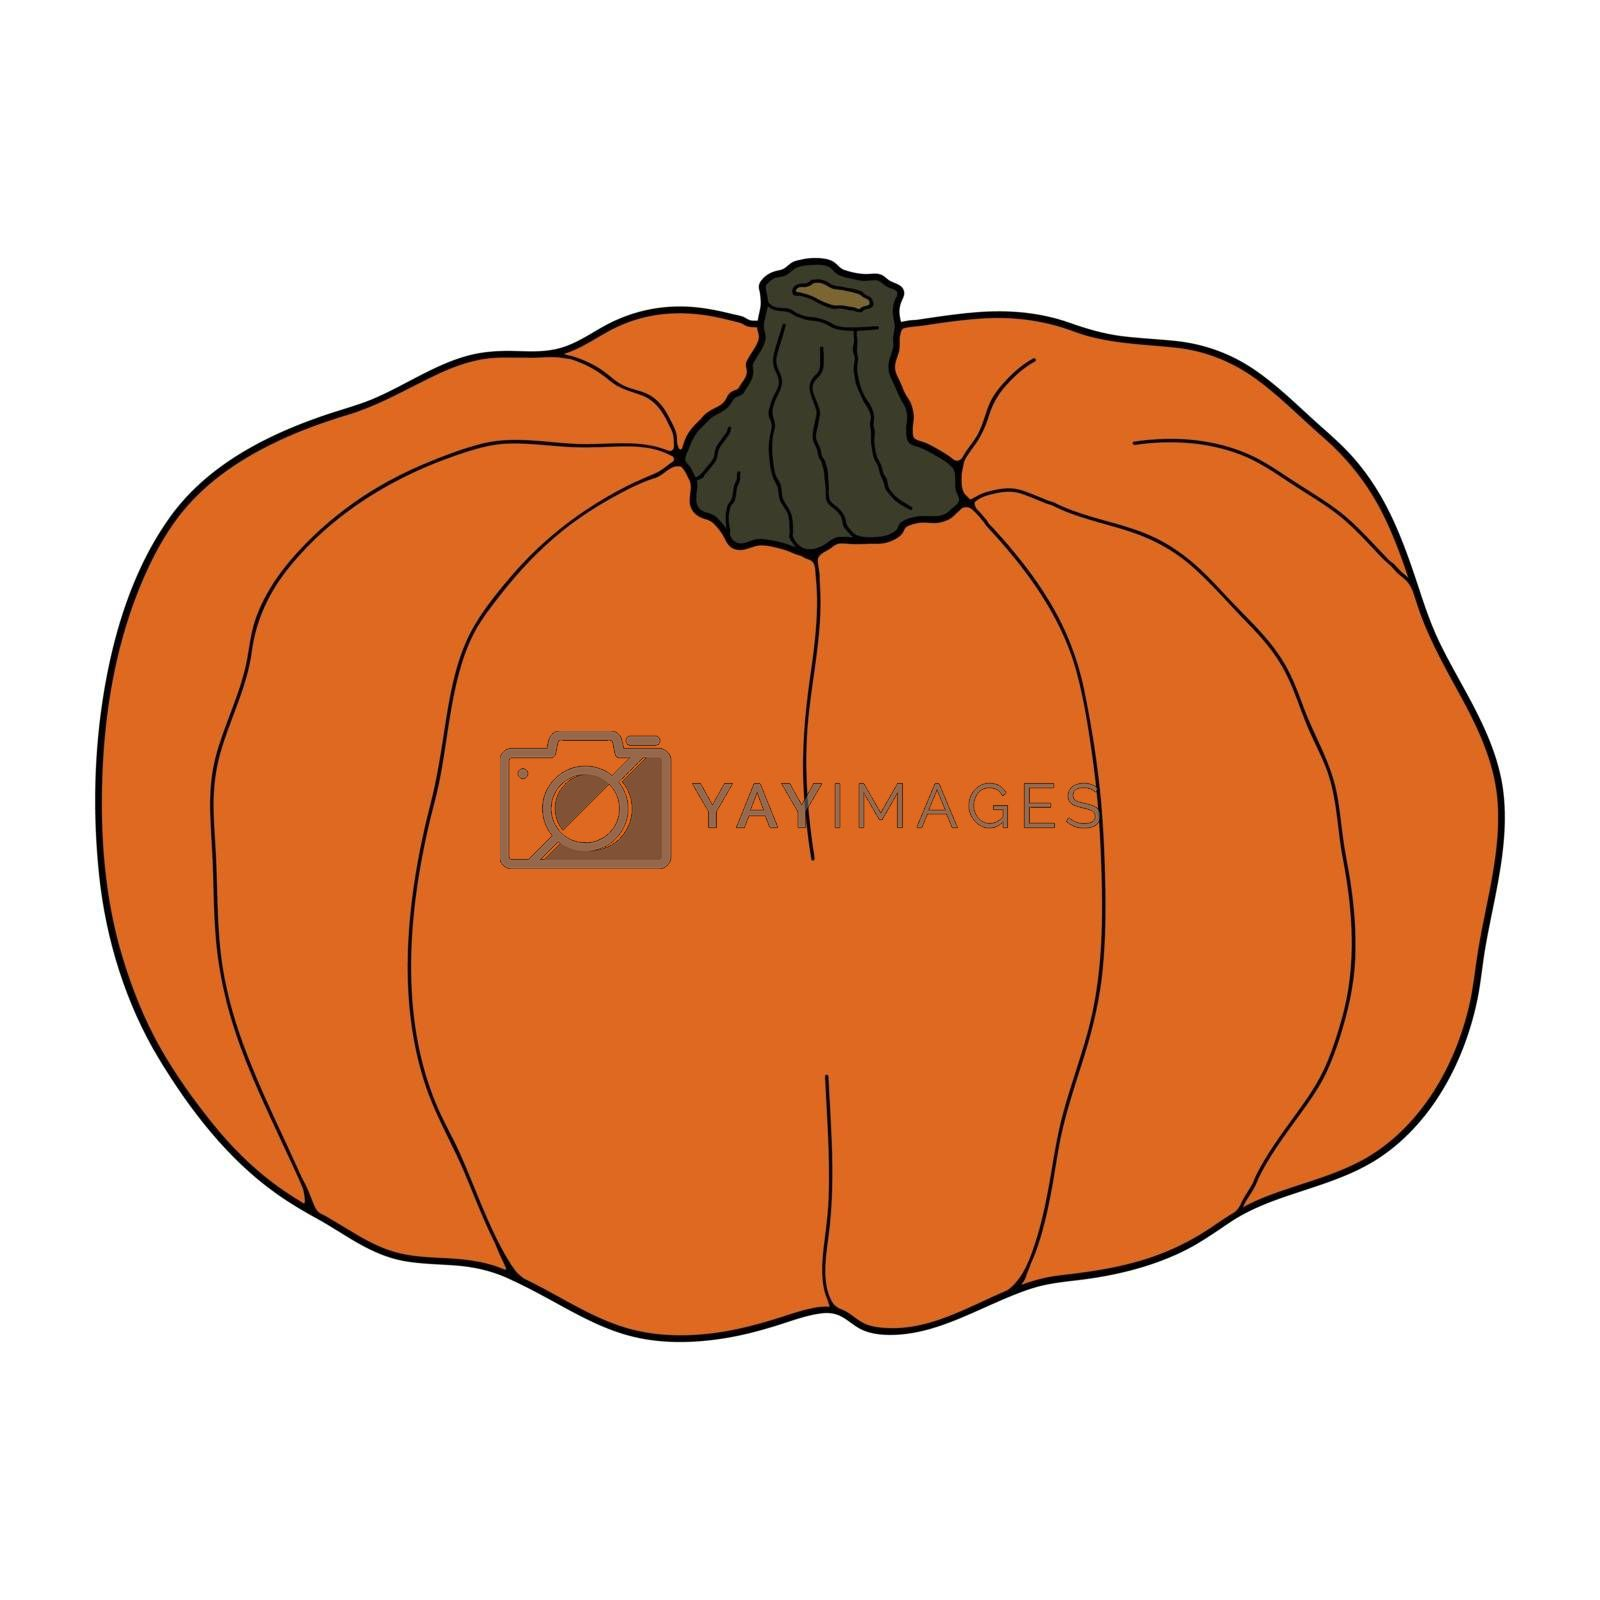 Pumpkin colorful vector illustration isolated on white background. Healthy vegetarian food. Doodle style. Decoration for greeting cards, posters, patches, prints for clothes, emblems.